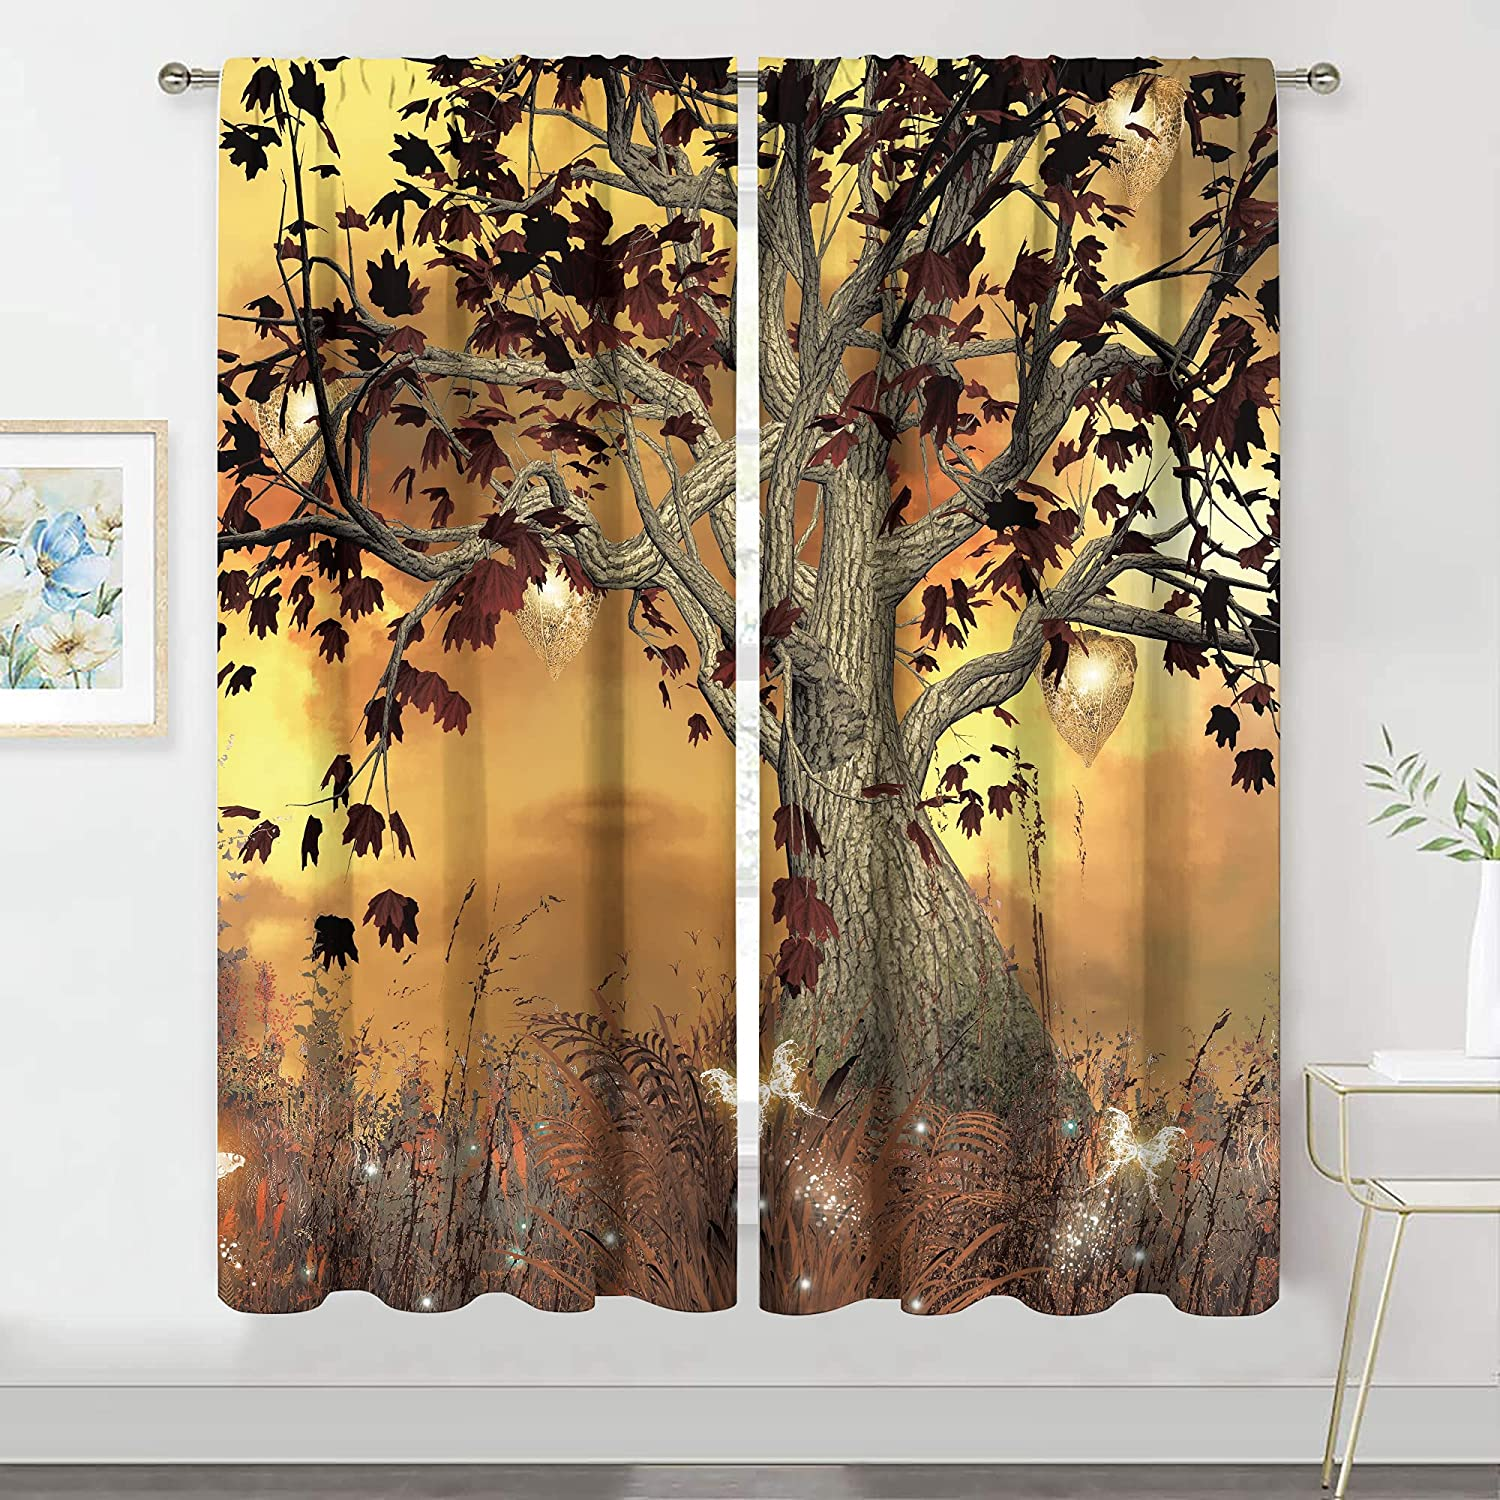 MESHELLY Yellow Fall Curtains 42 (W) x 63(H) Inch Rod Pocket Mystical Tree Decor Rustic Floral Shrub Yellow Brown Art Printed Living Room Bedroom Window Drapes Treatment Fabric 2 Panels